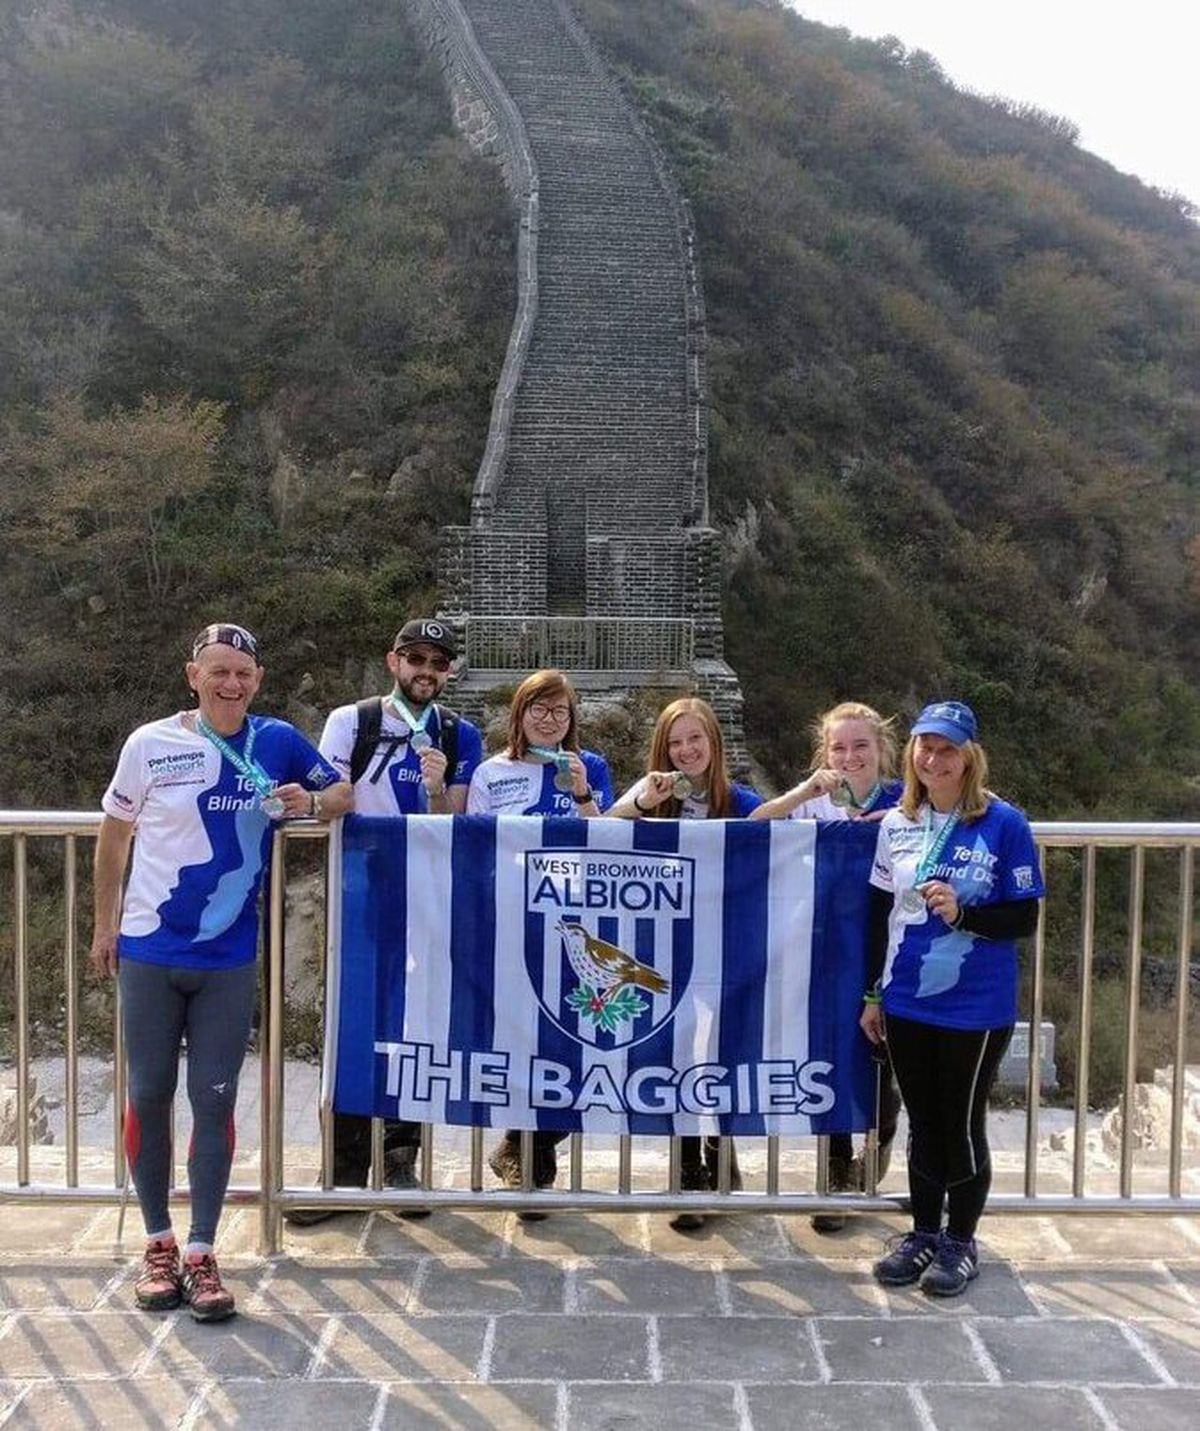 Dave travelled with his family and others to trek along the Great Wall of China